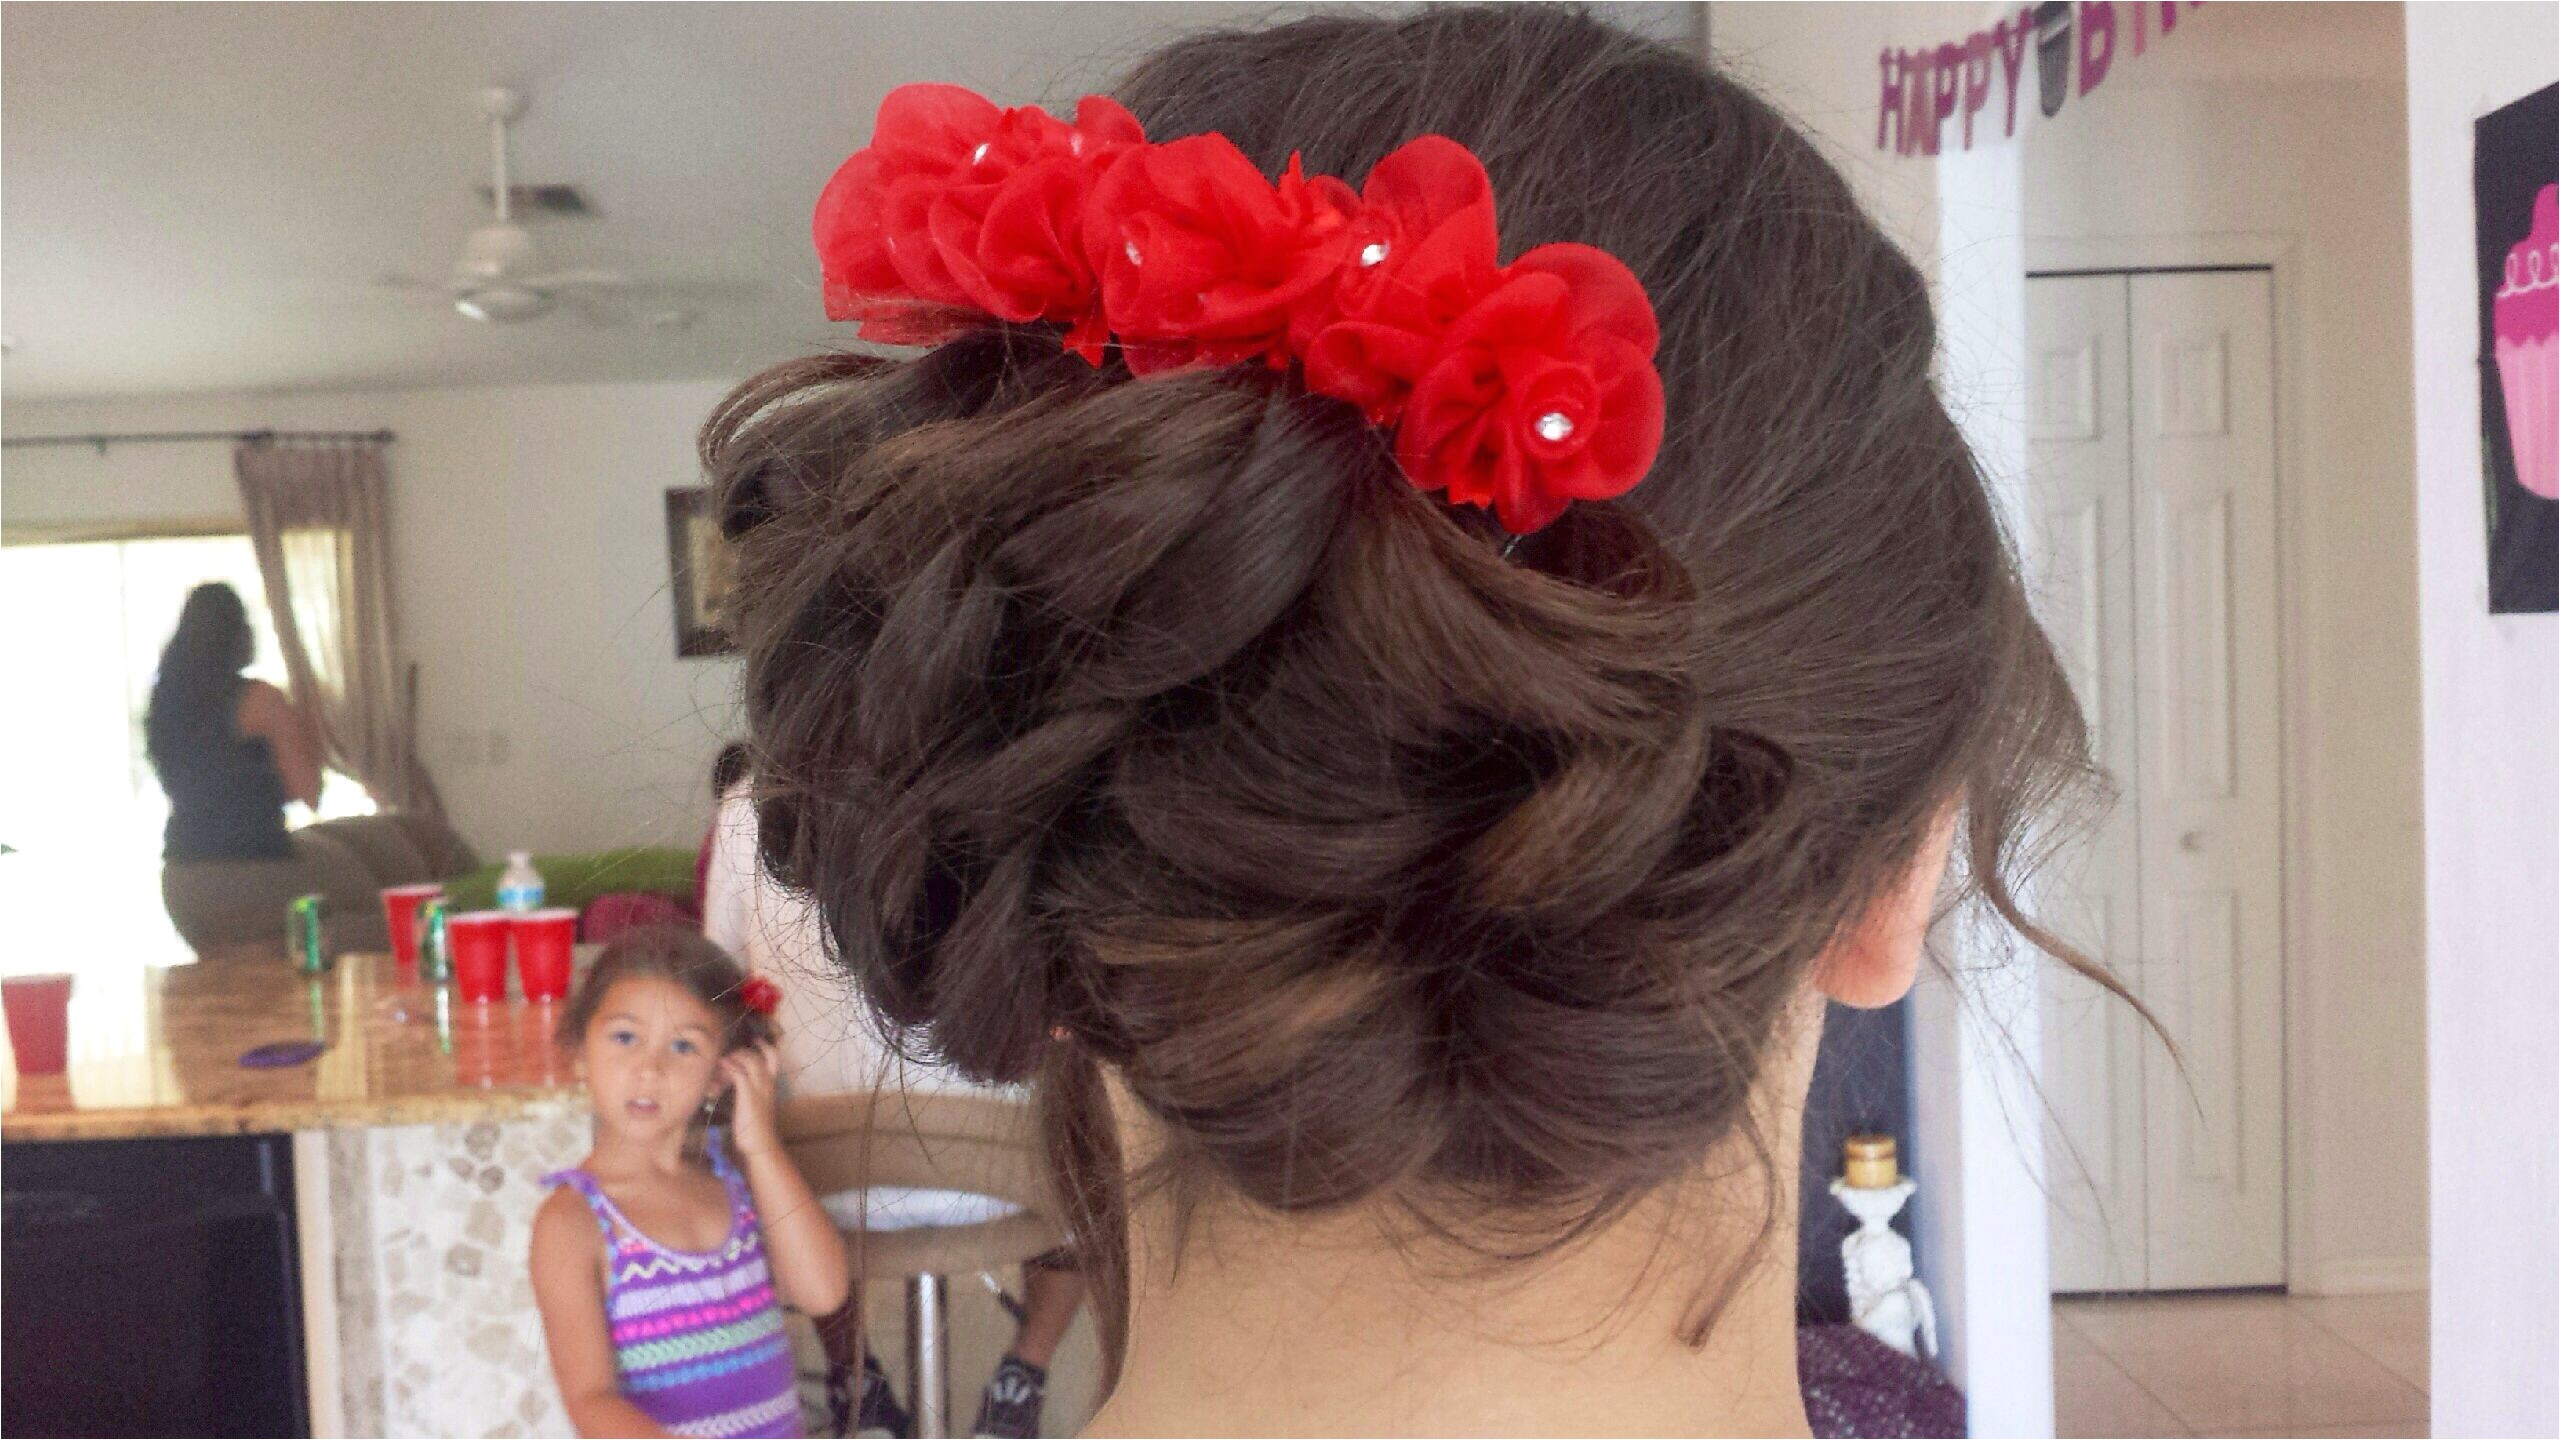 Wedding Hair for Flower Girl Luxury Flower Girl Hair Brown Hair Curly Updo Wedding Flowers